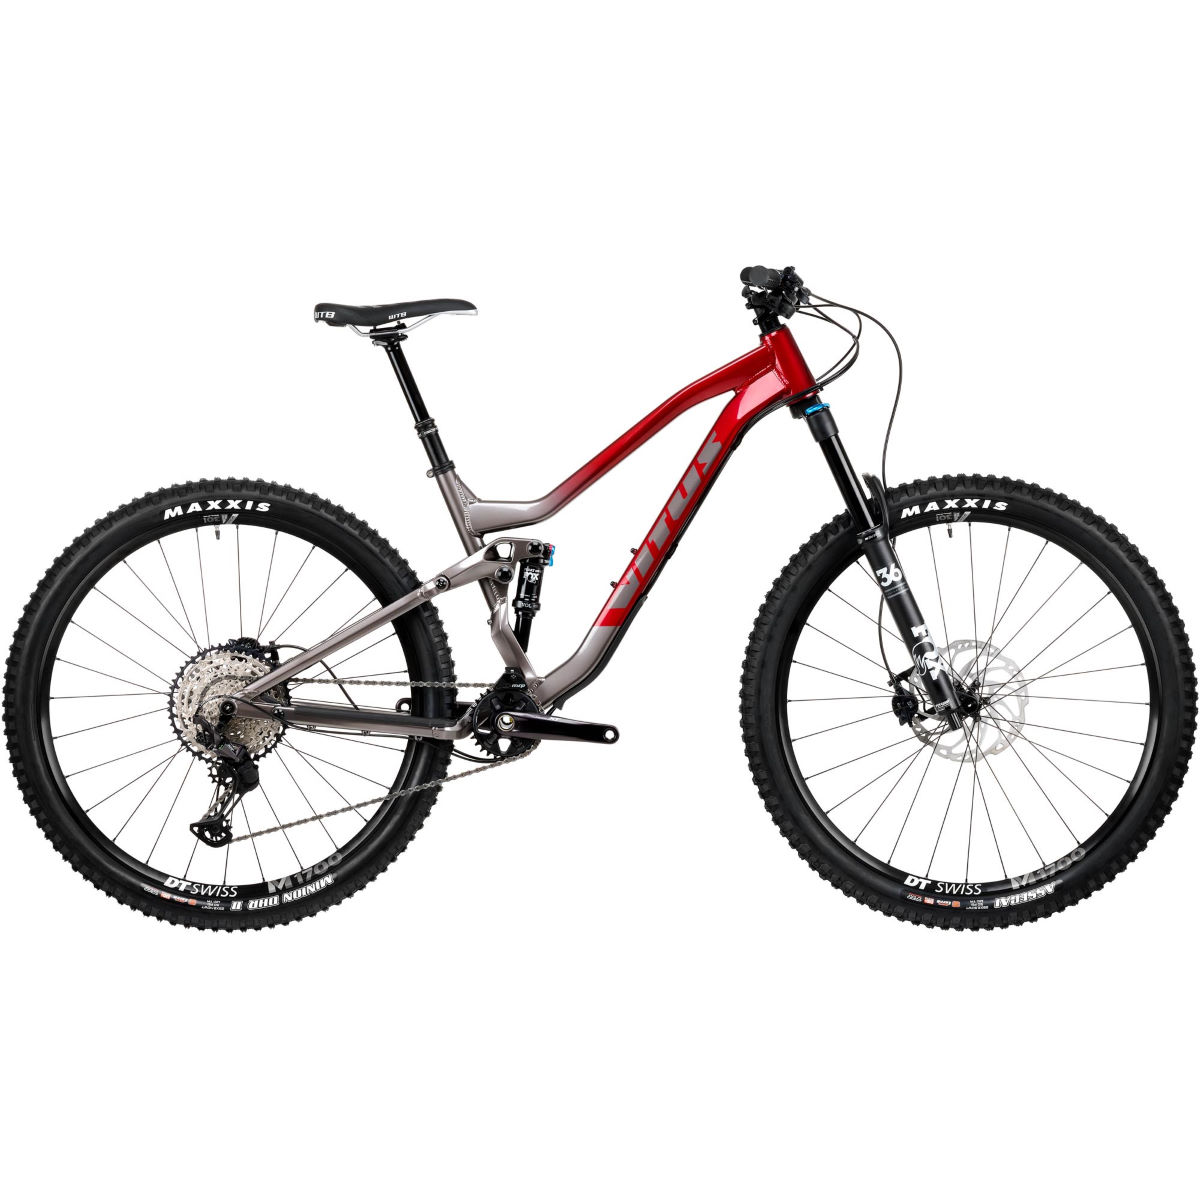 Vitus Vitus Escarpe 29 VRS Bike (SLX 1x12 - 2020)   Full Suspension Mountain Bikes